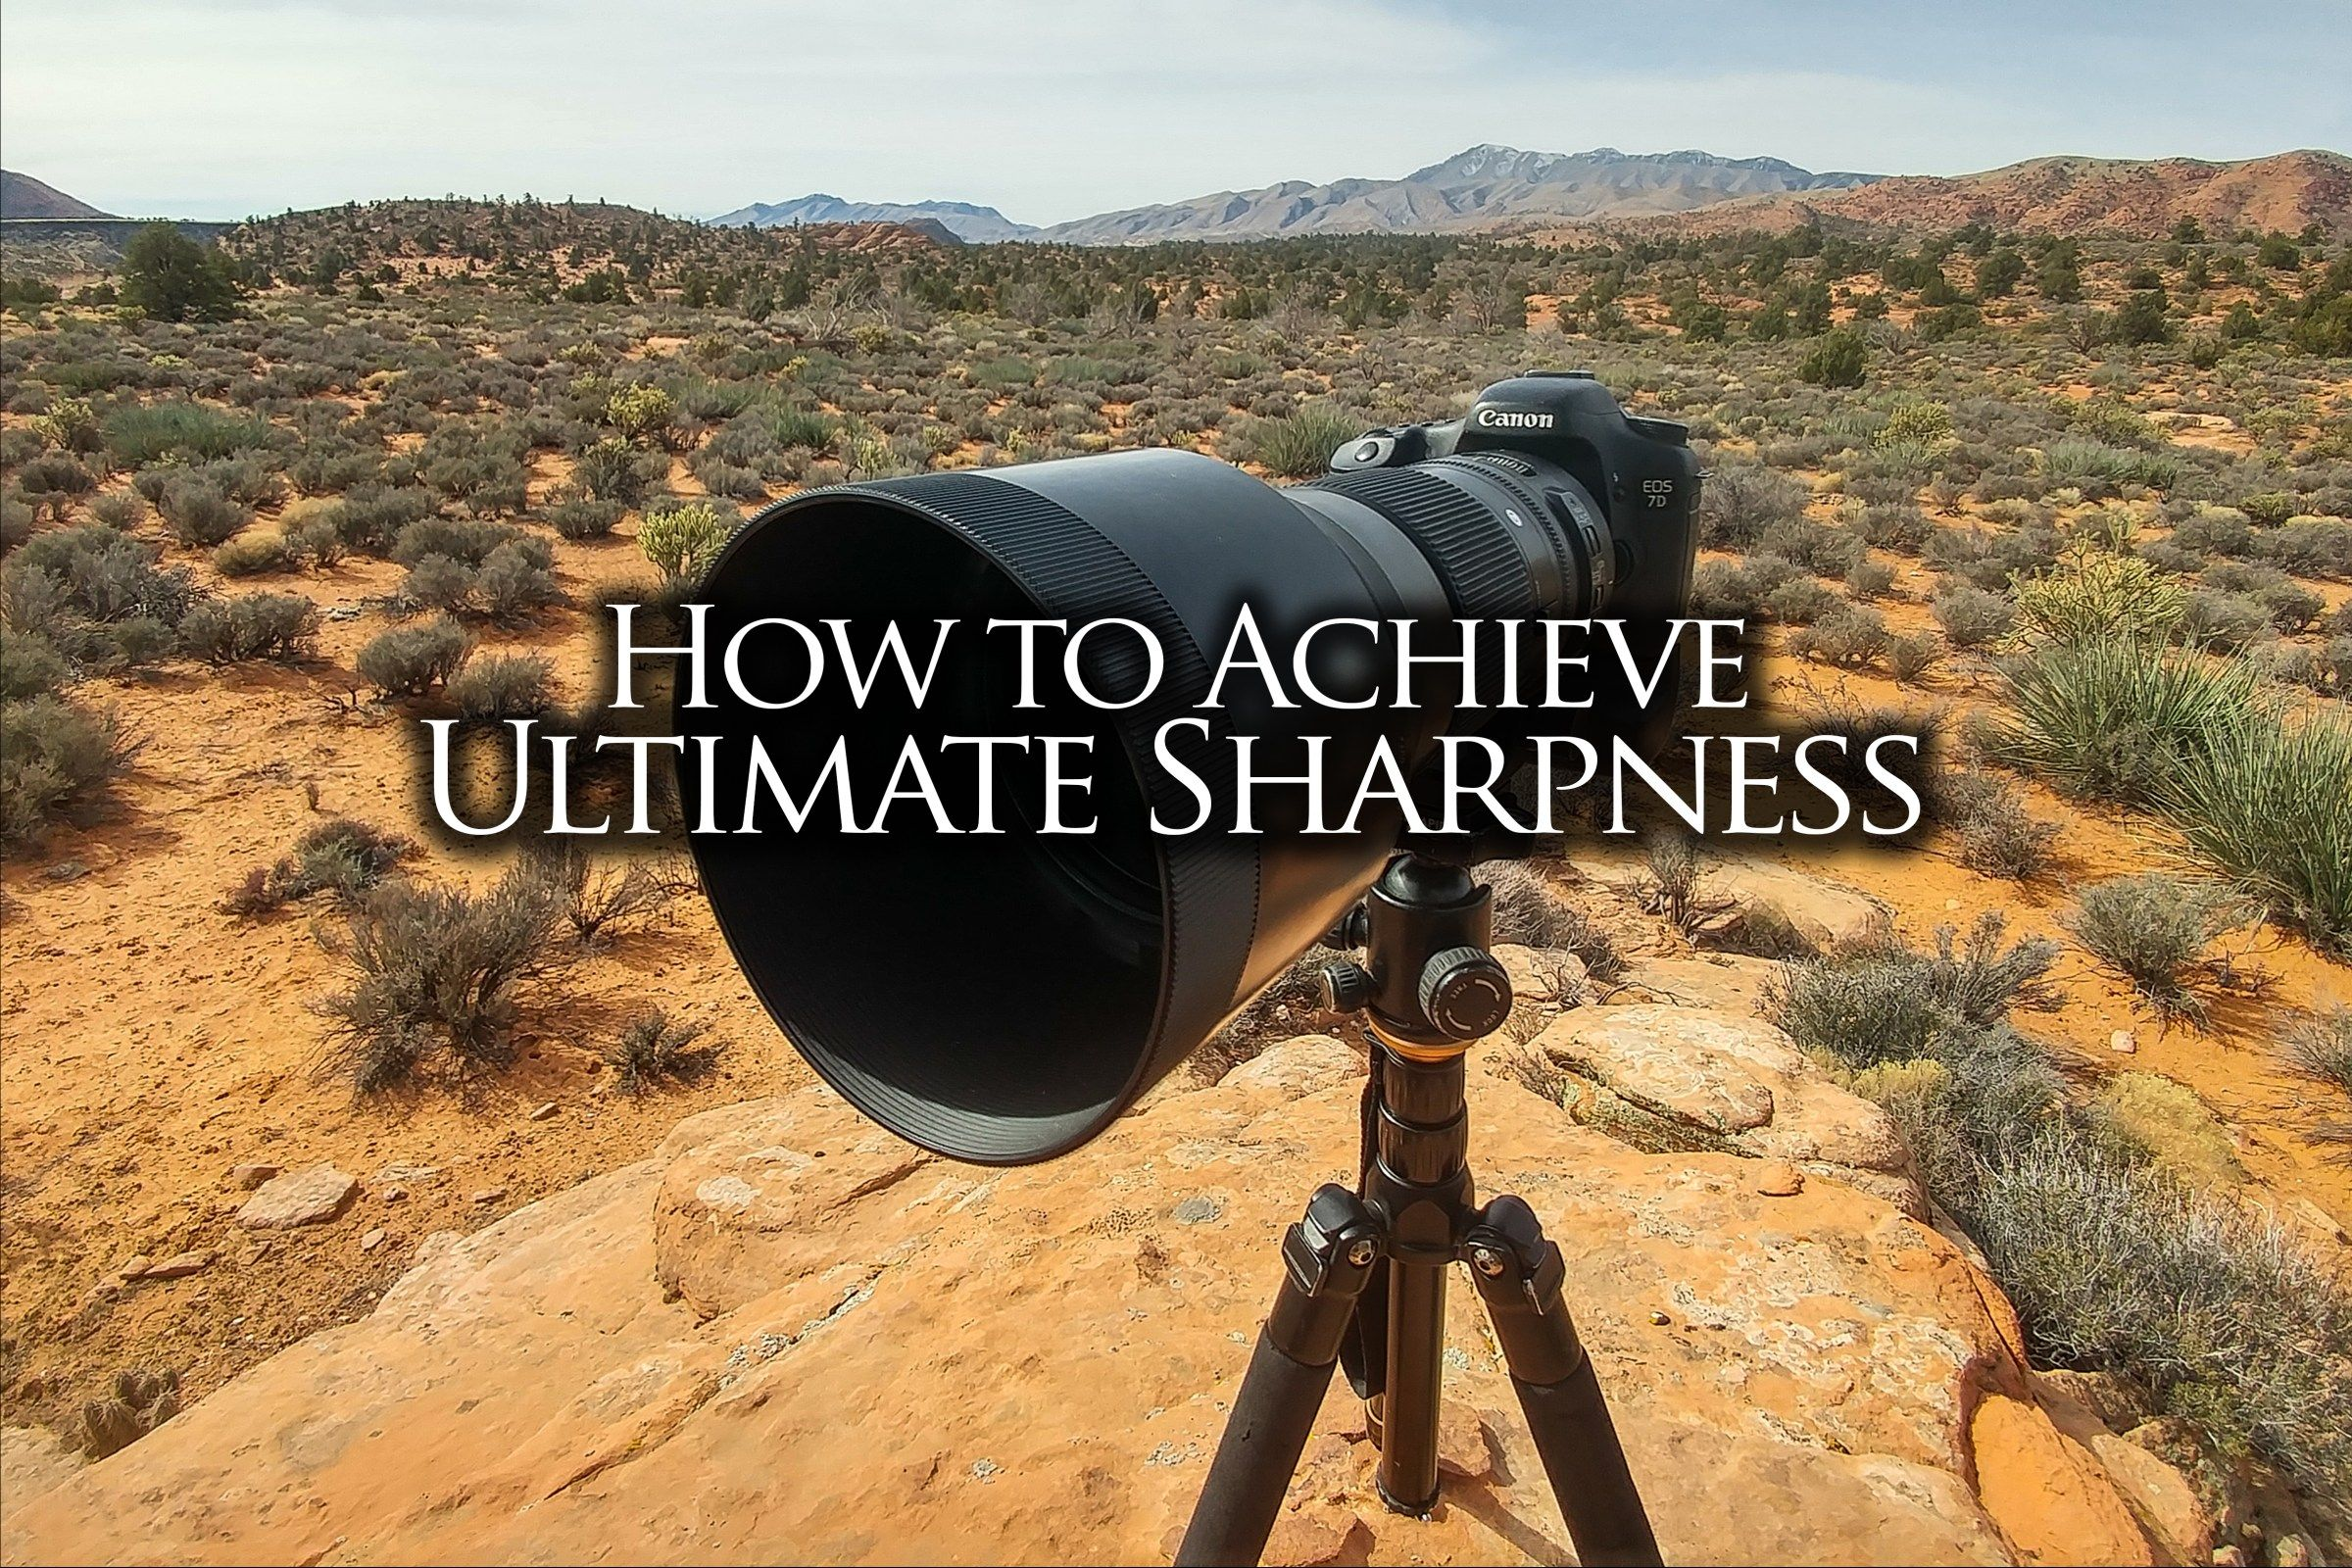 How to Achieve Ultimate Sharpness - Find Me On The Mountain